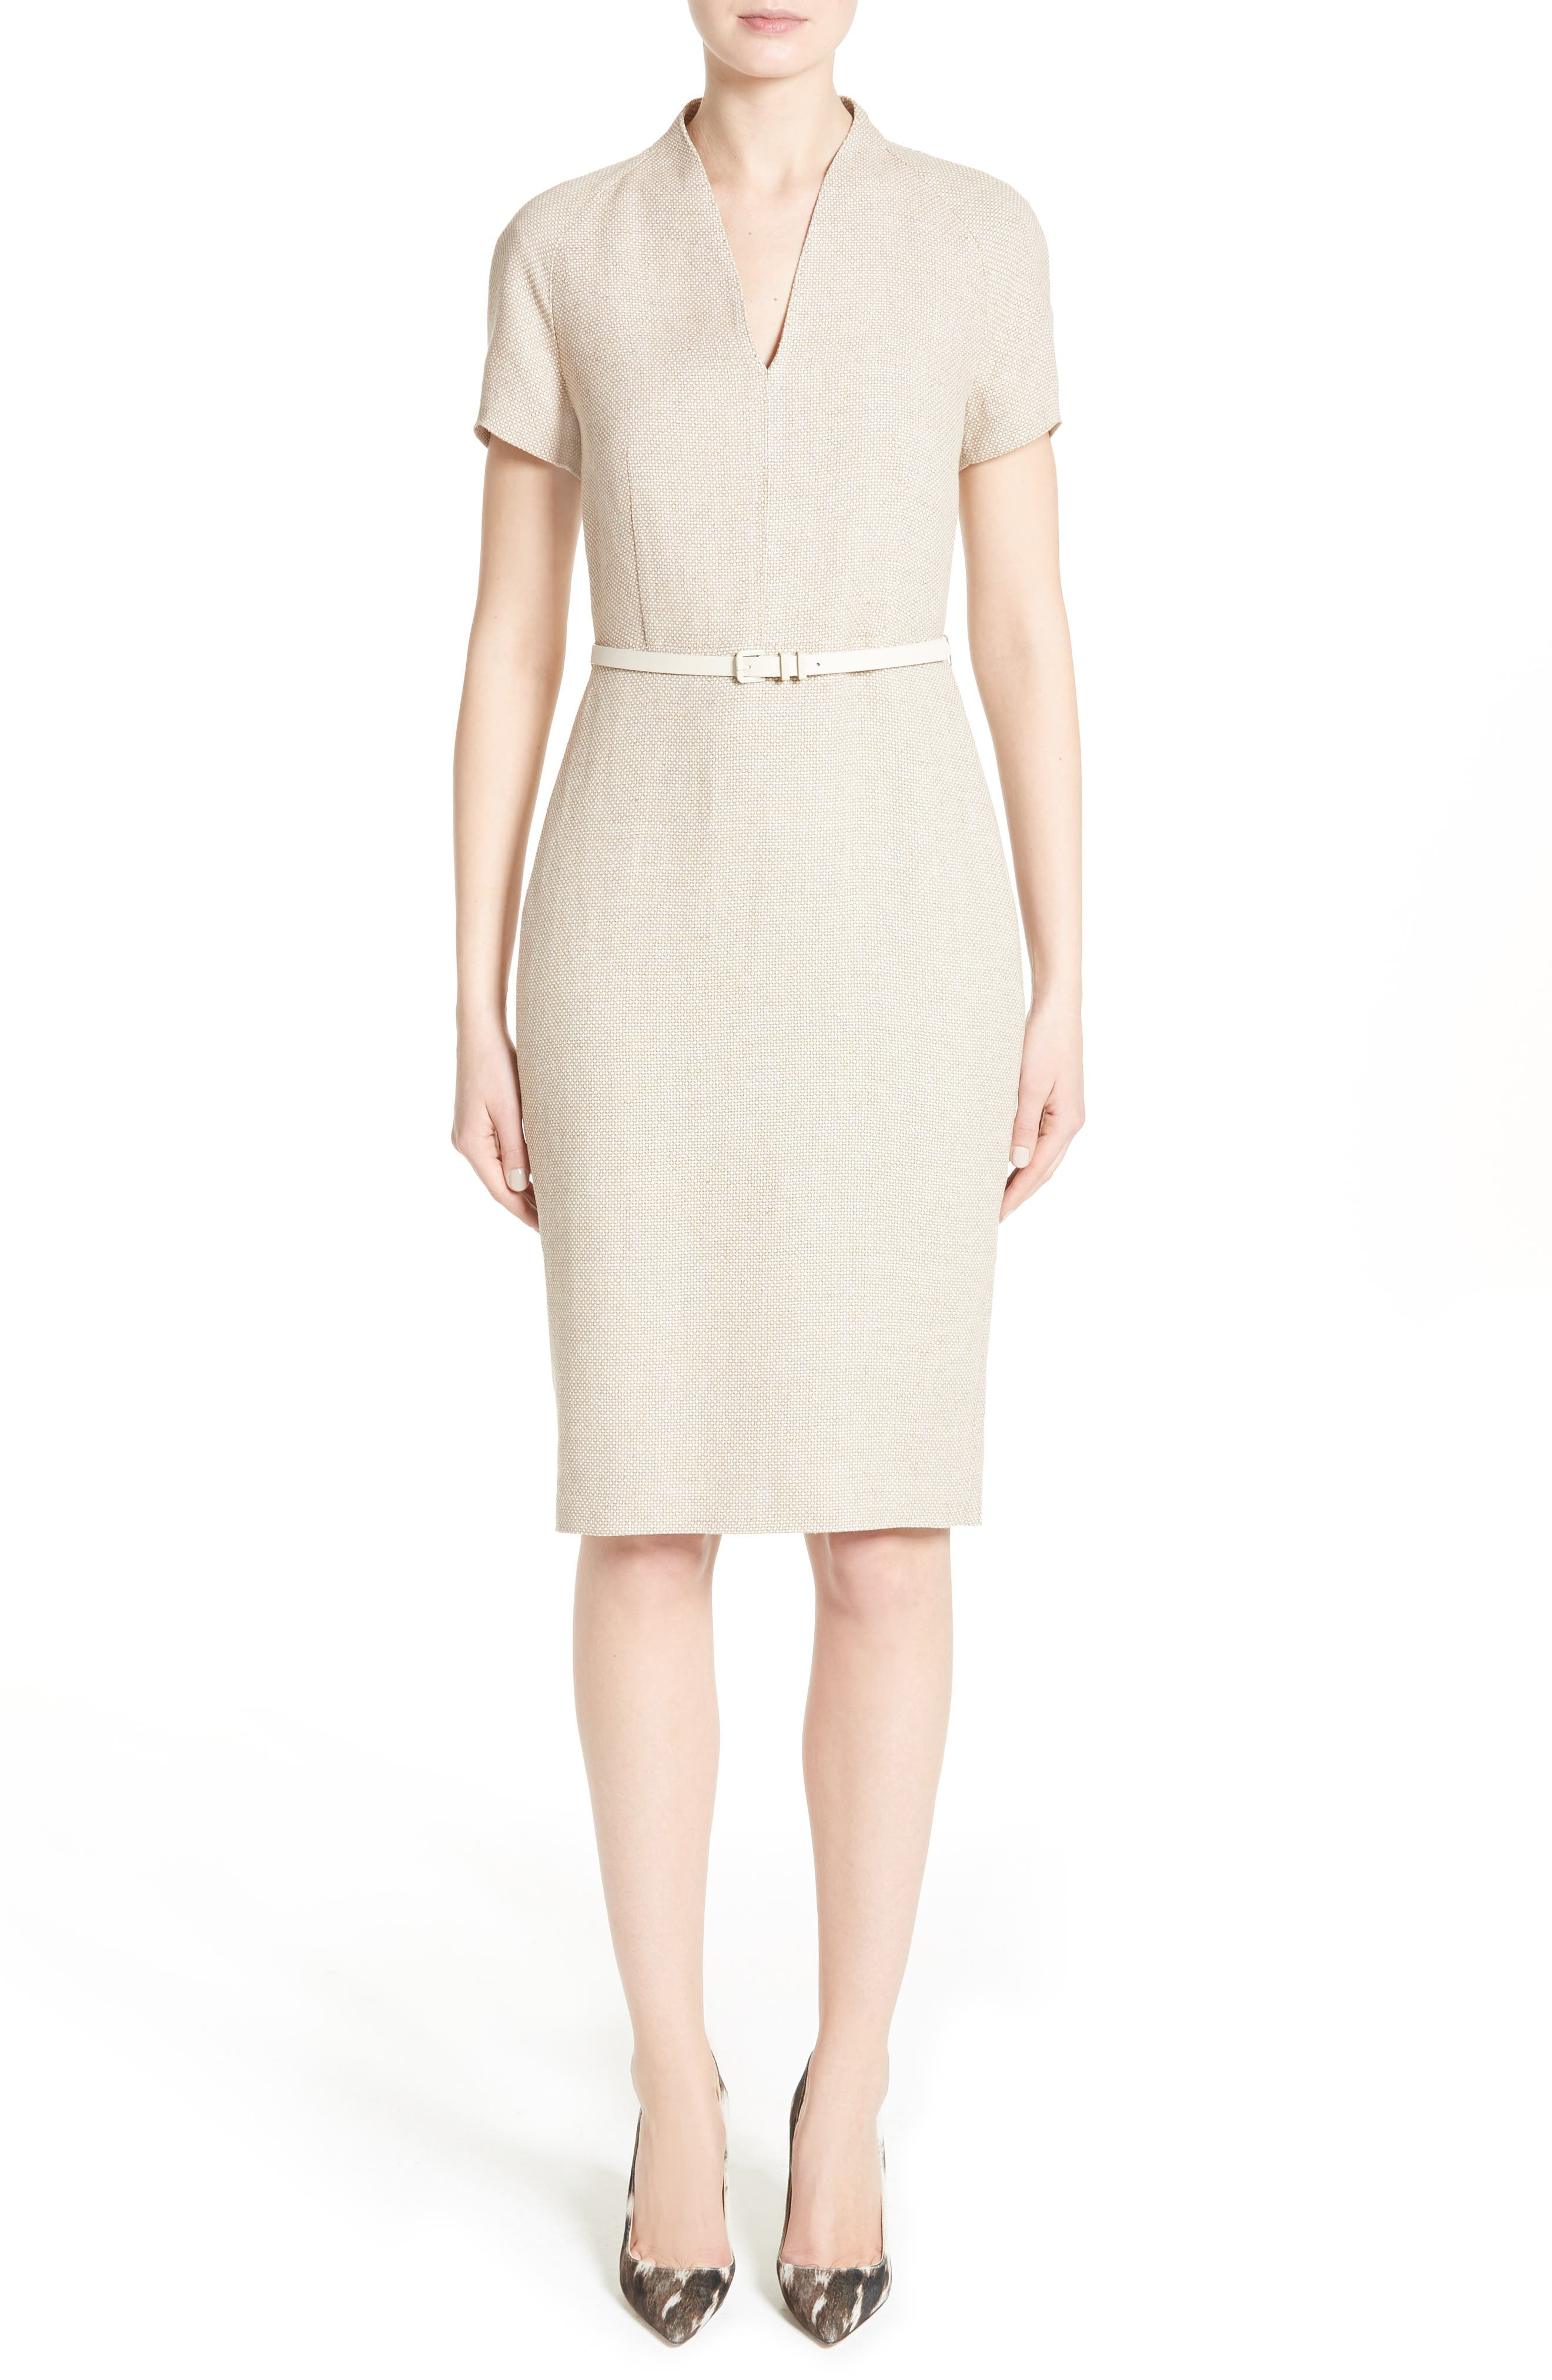 Alternate Image 1 Selected - Max Mara Azeglio Belted Linen Sheath Dress